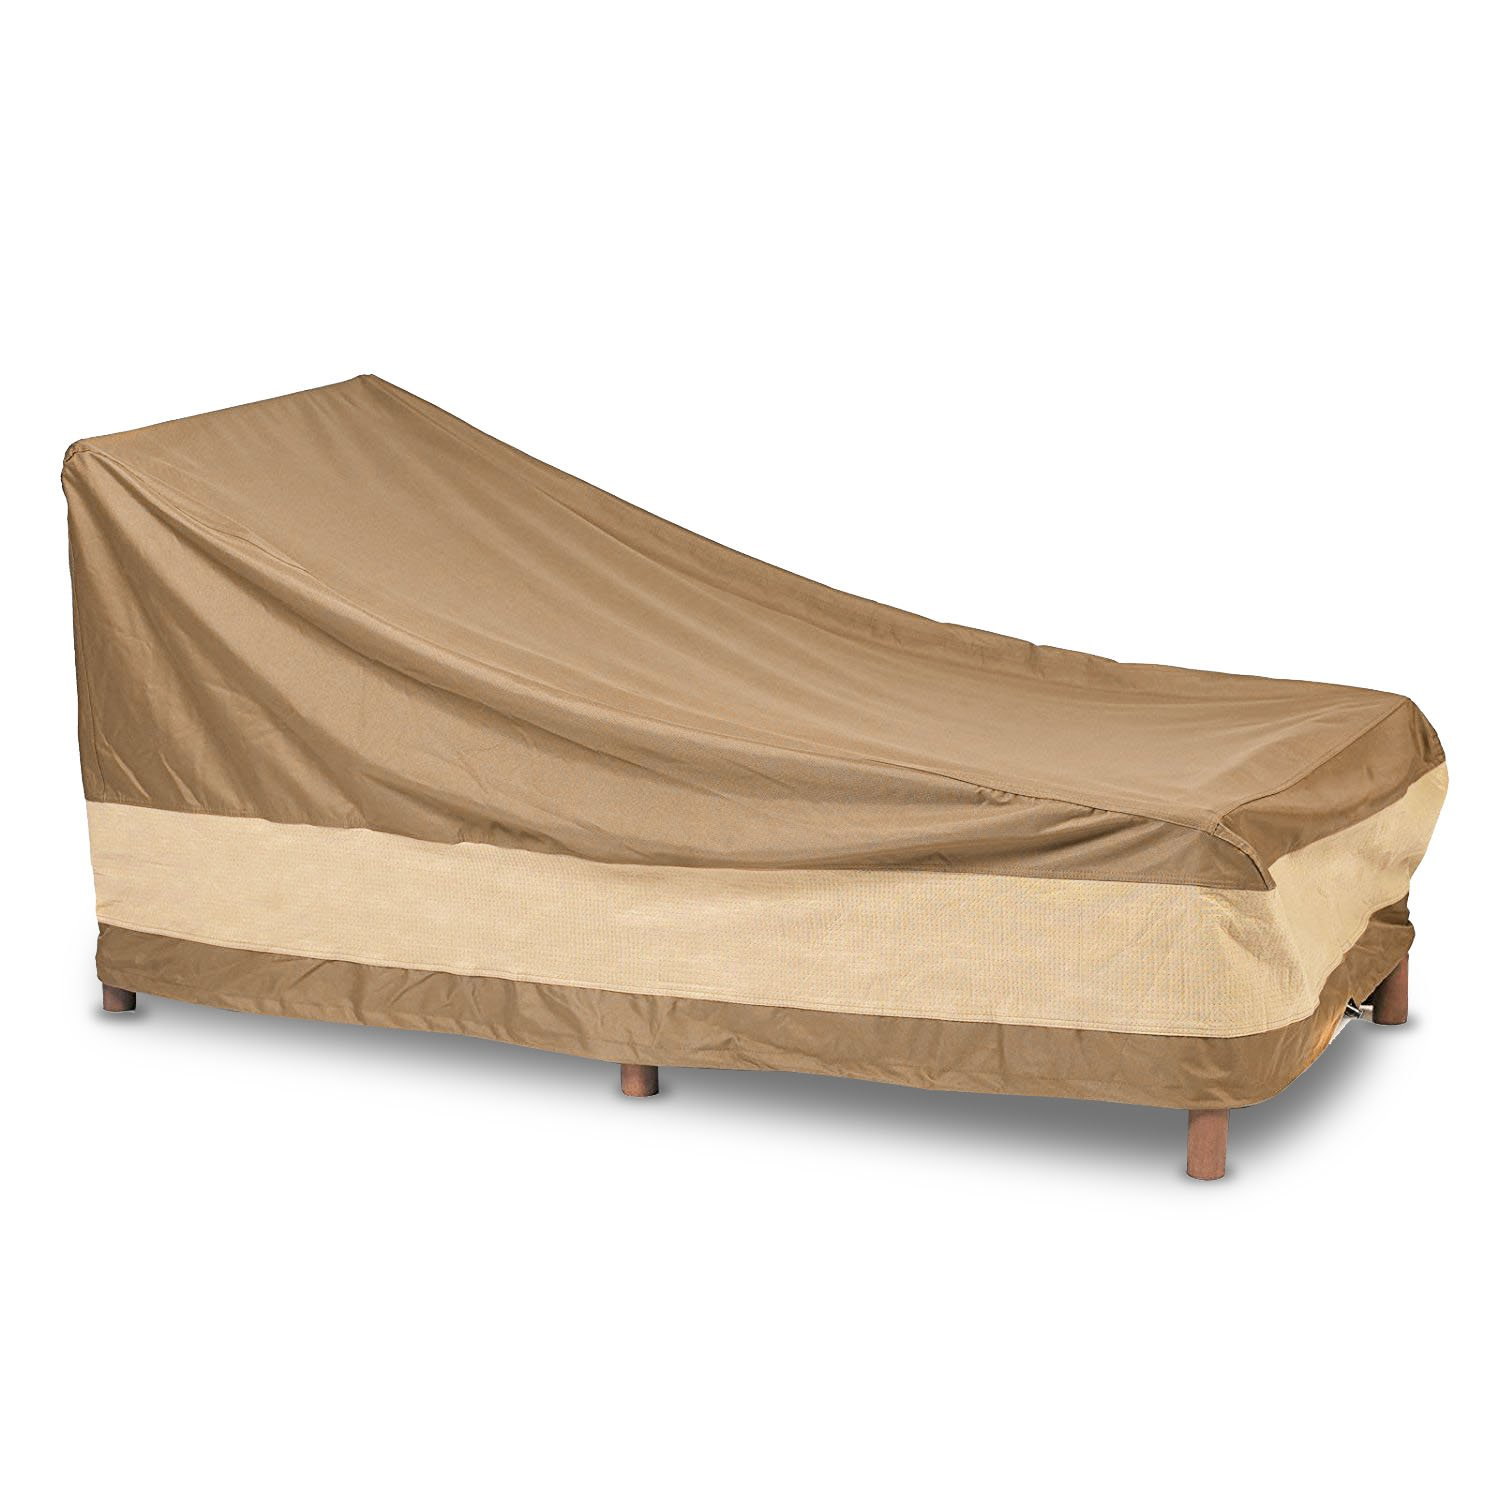 AnyWeather AWPC04 Patio Chaise Lounge Outdoor Cover, Beige